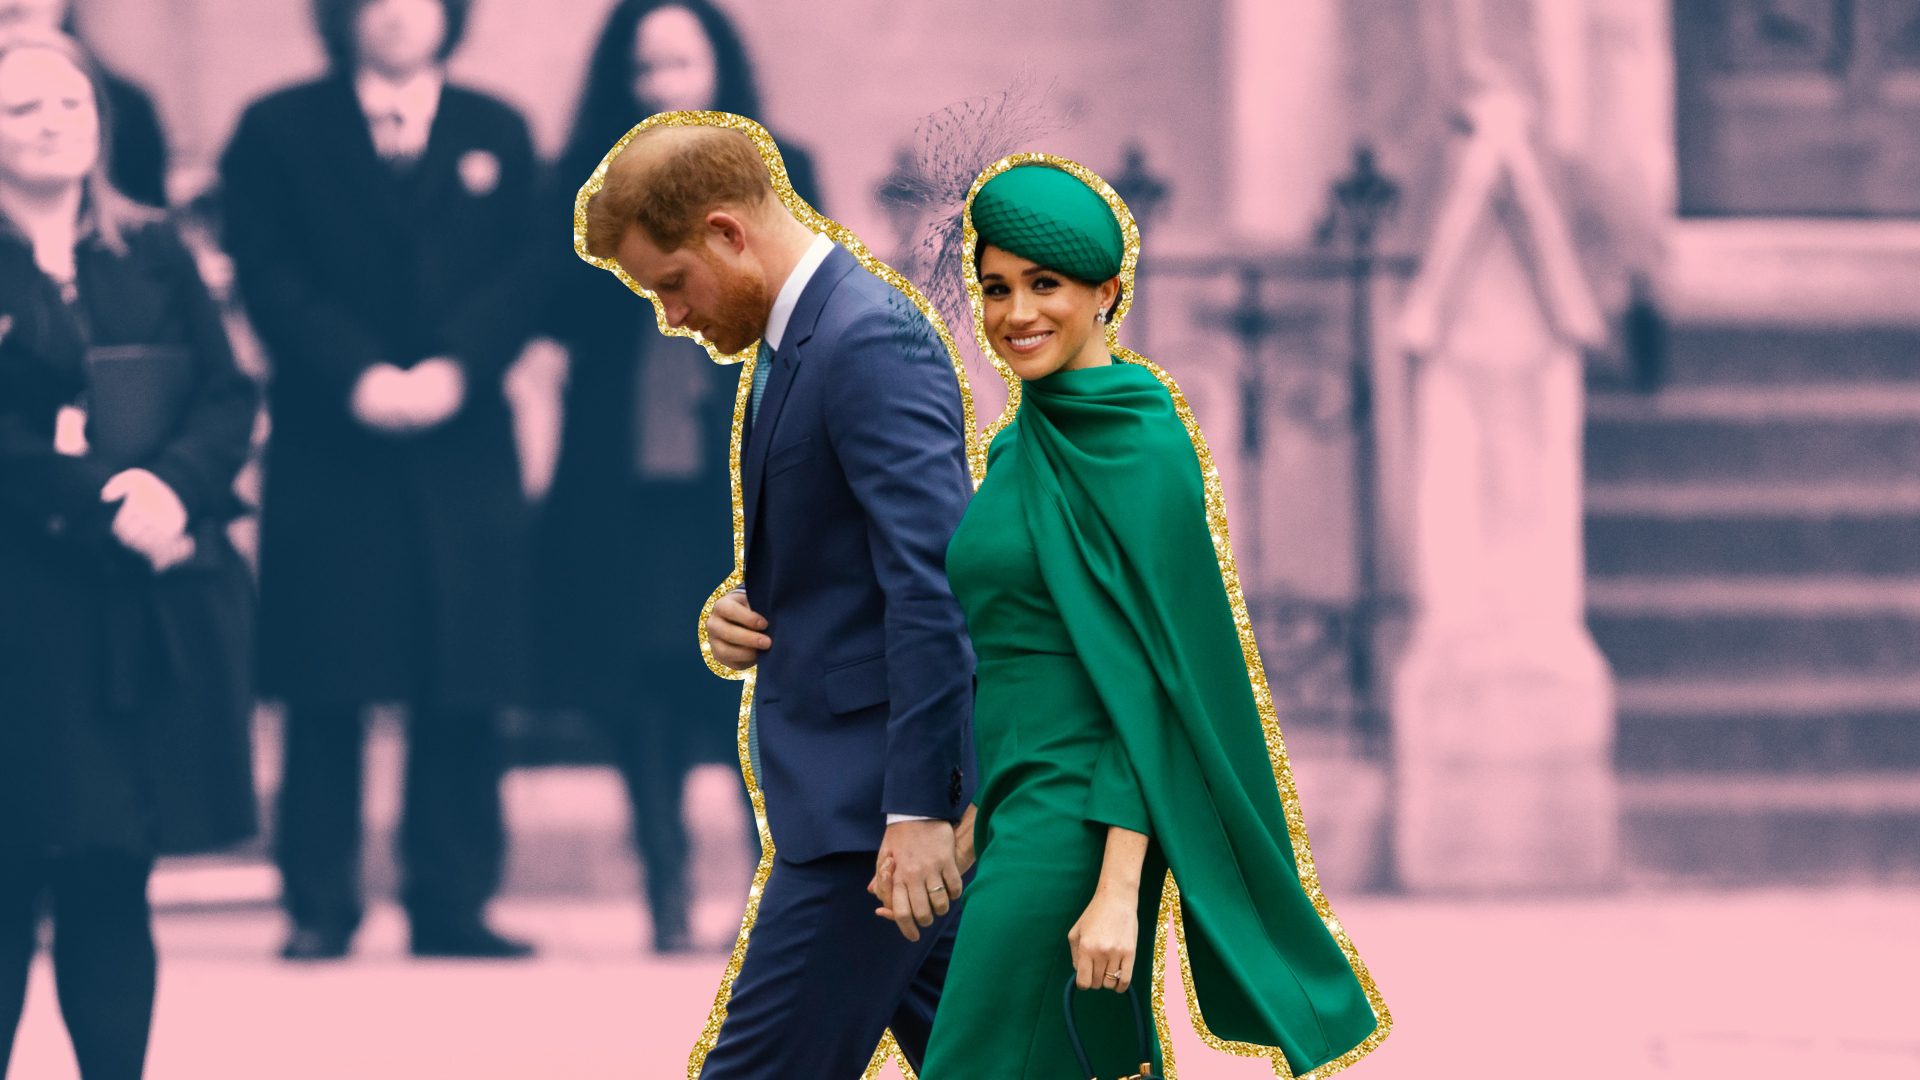 signs meghan markle prince harry were going to exit the royal family sheknows signs meghan markle prince harry were